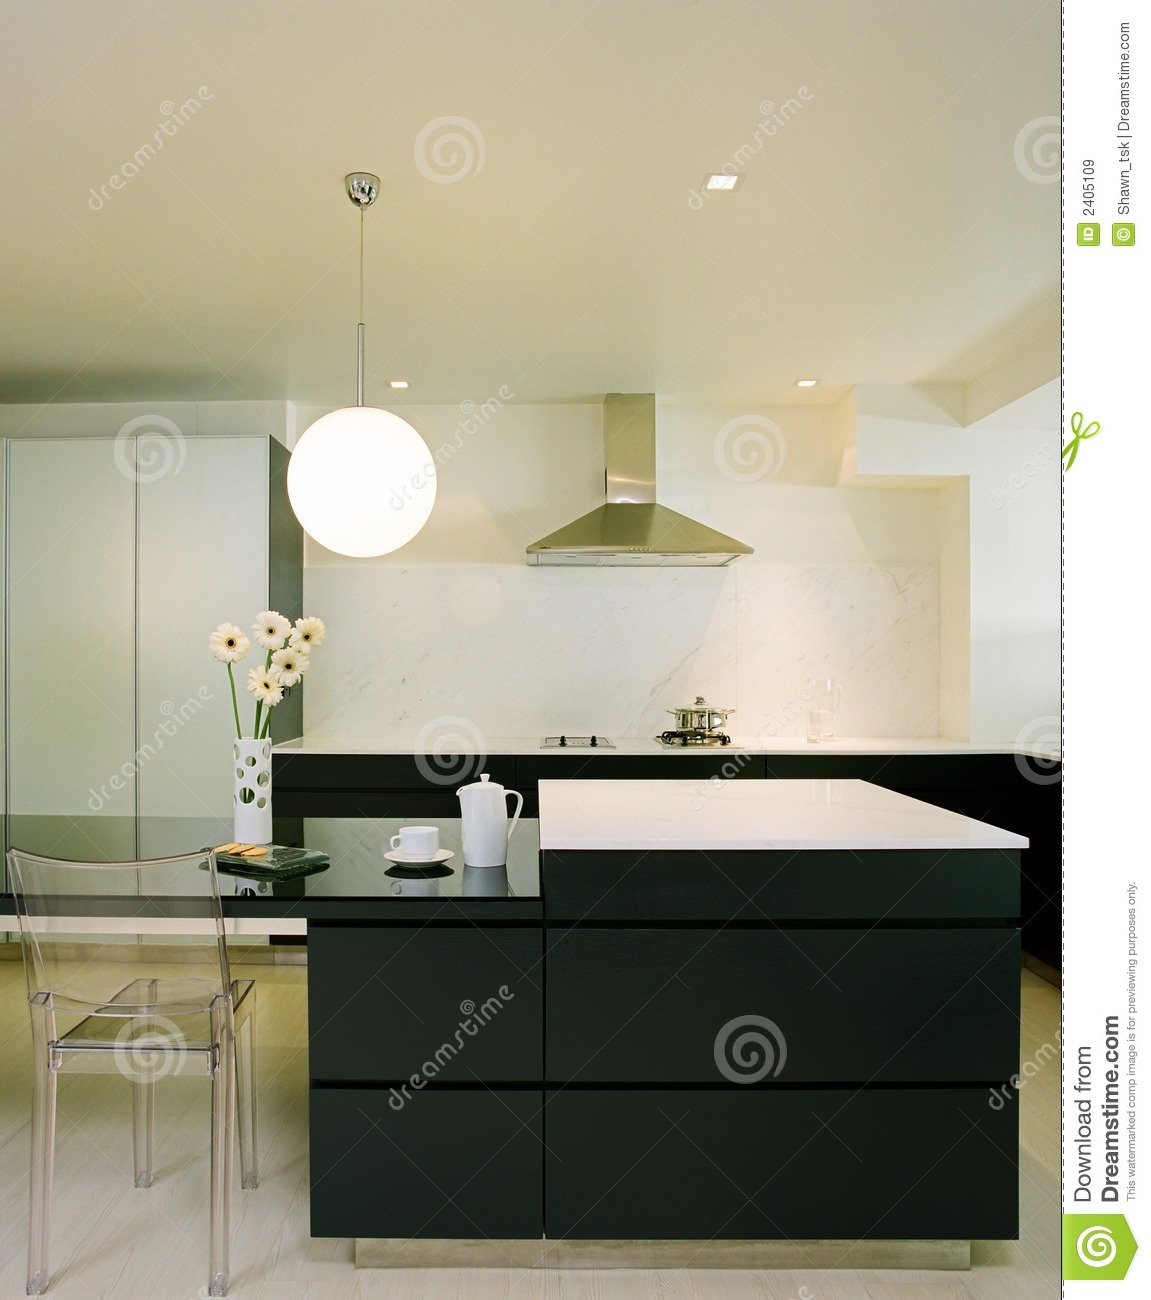 Interior Design Kitchen Royalty Free Stock Images Image 2405109